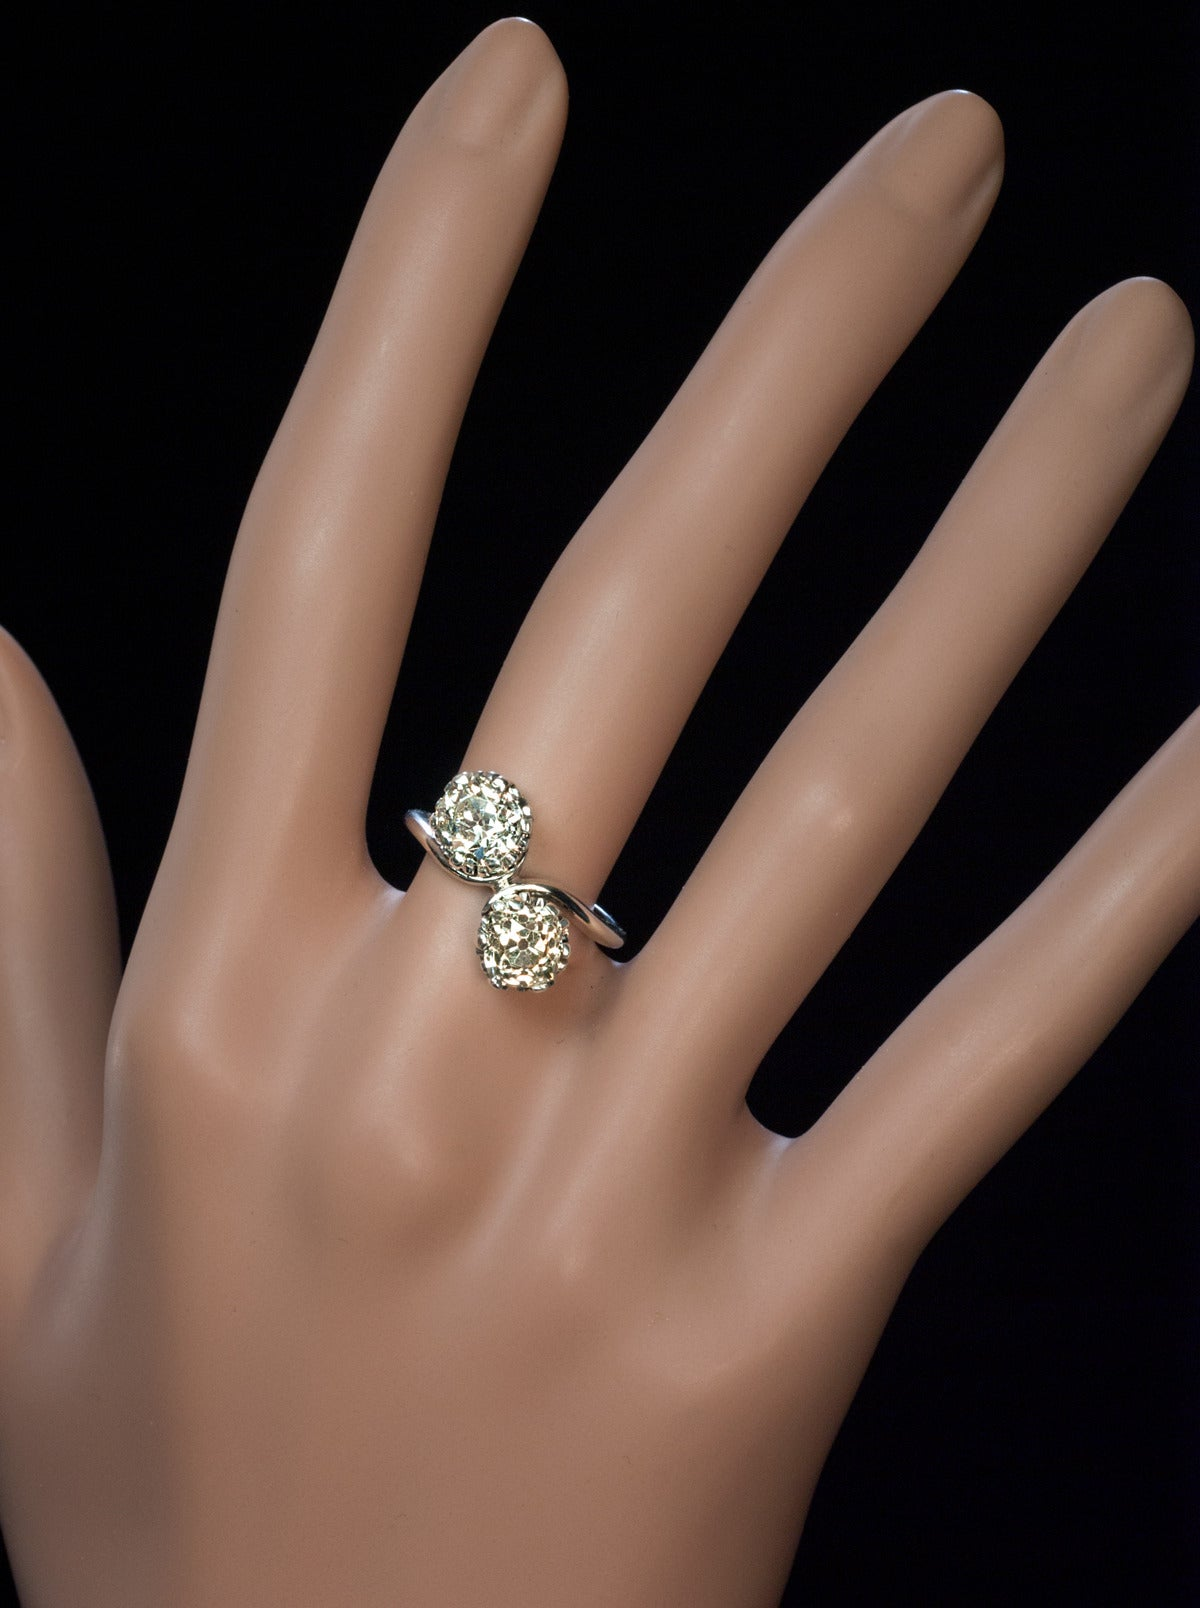 Antique Diamond Gold Bypass Engagement Ring For Sale at 1stdibs